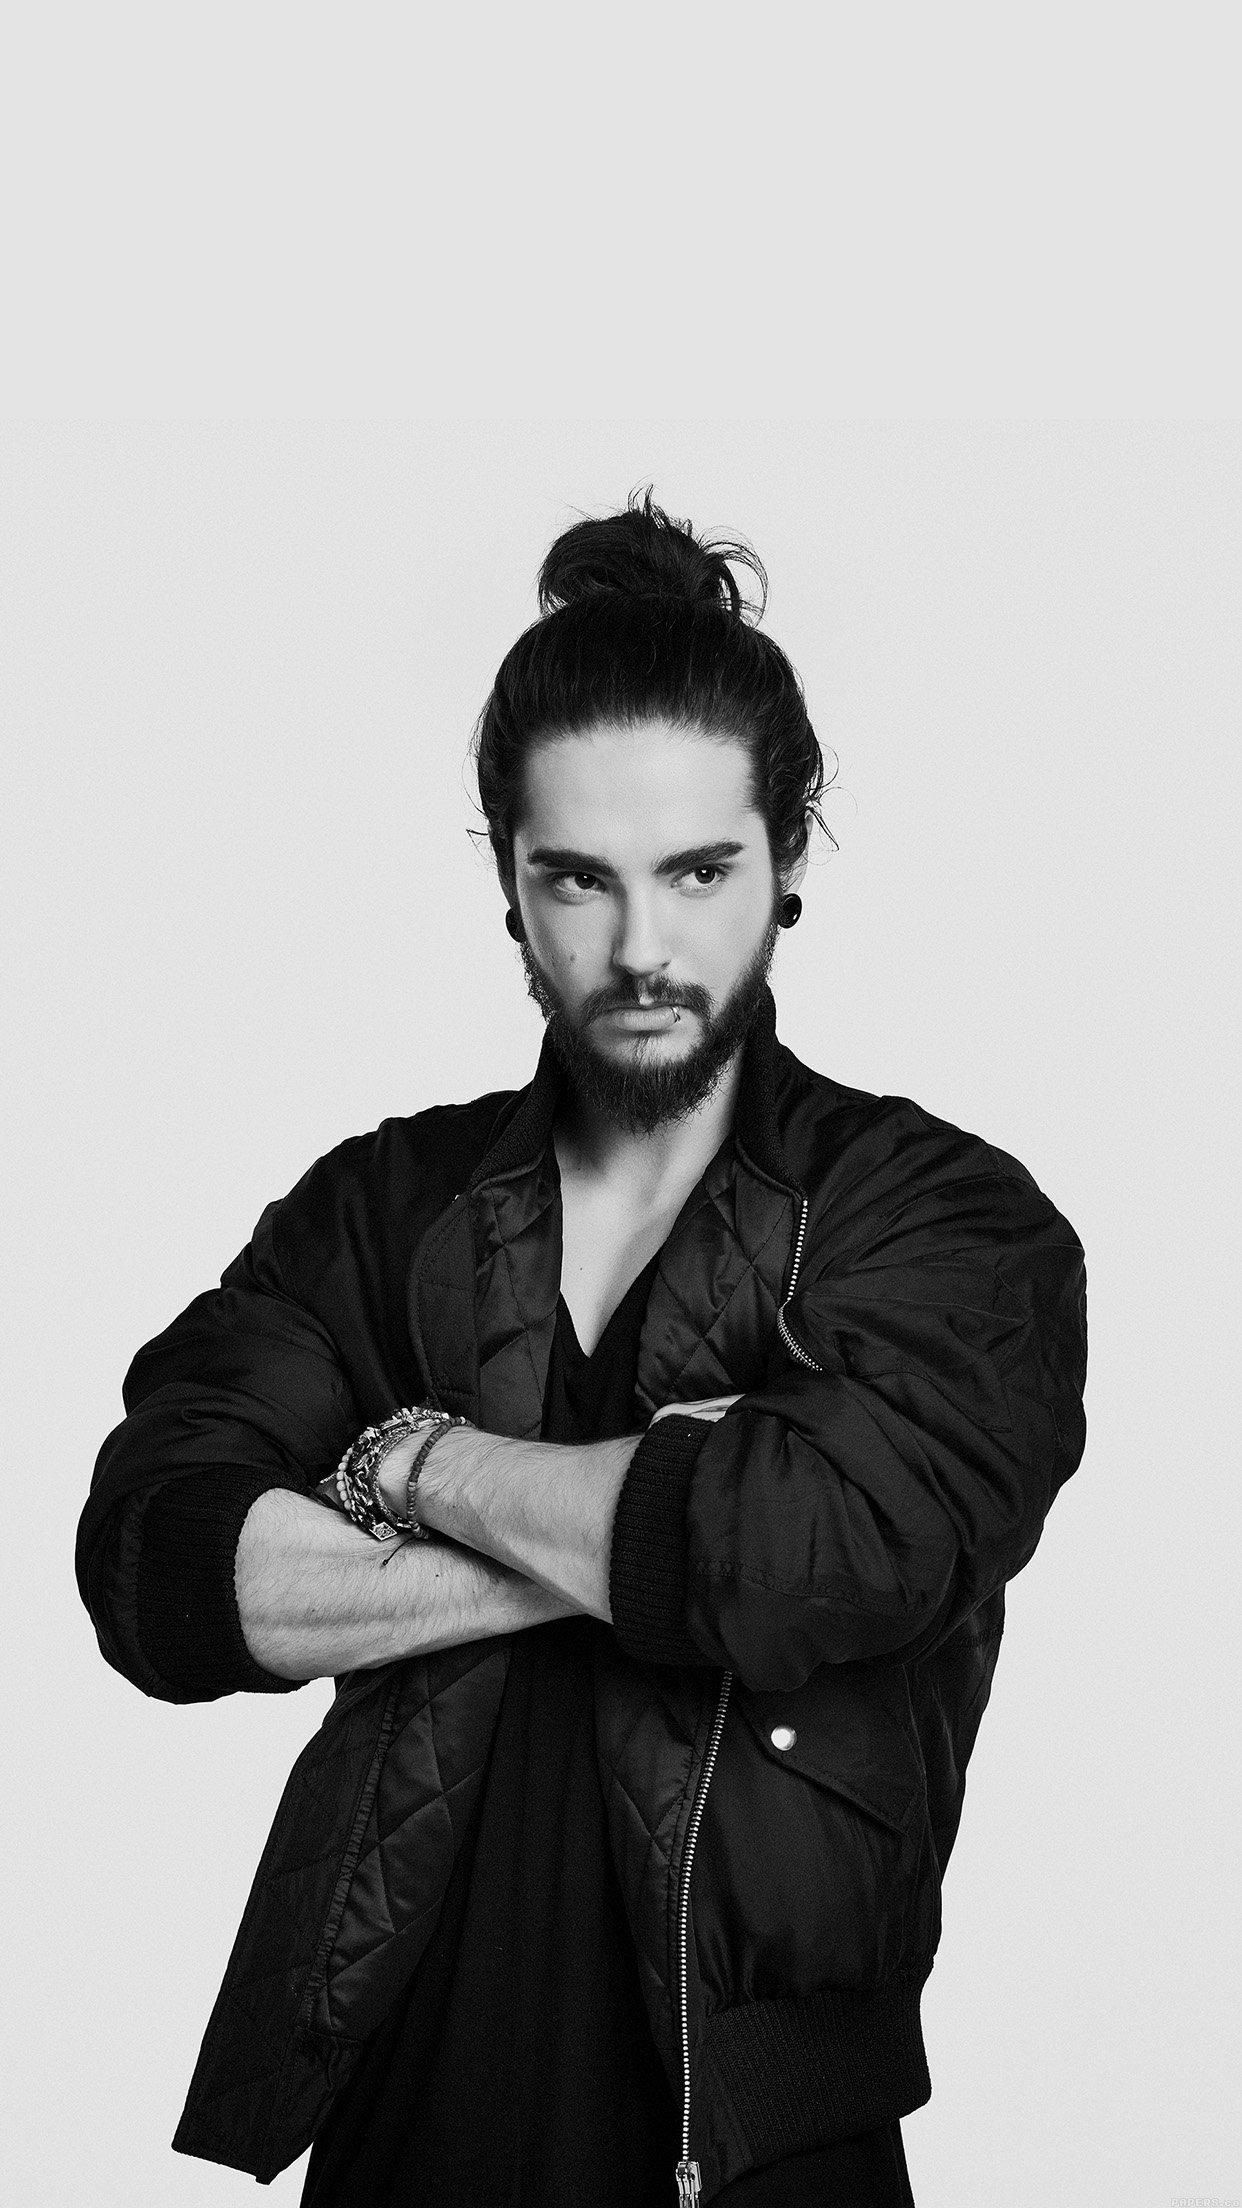 Tokio Hotel German Pop Rock Band Music Celebrity Android wallpapers